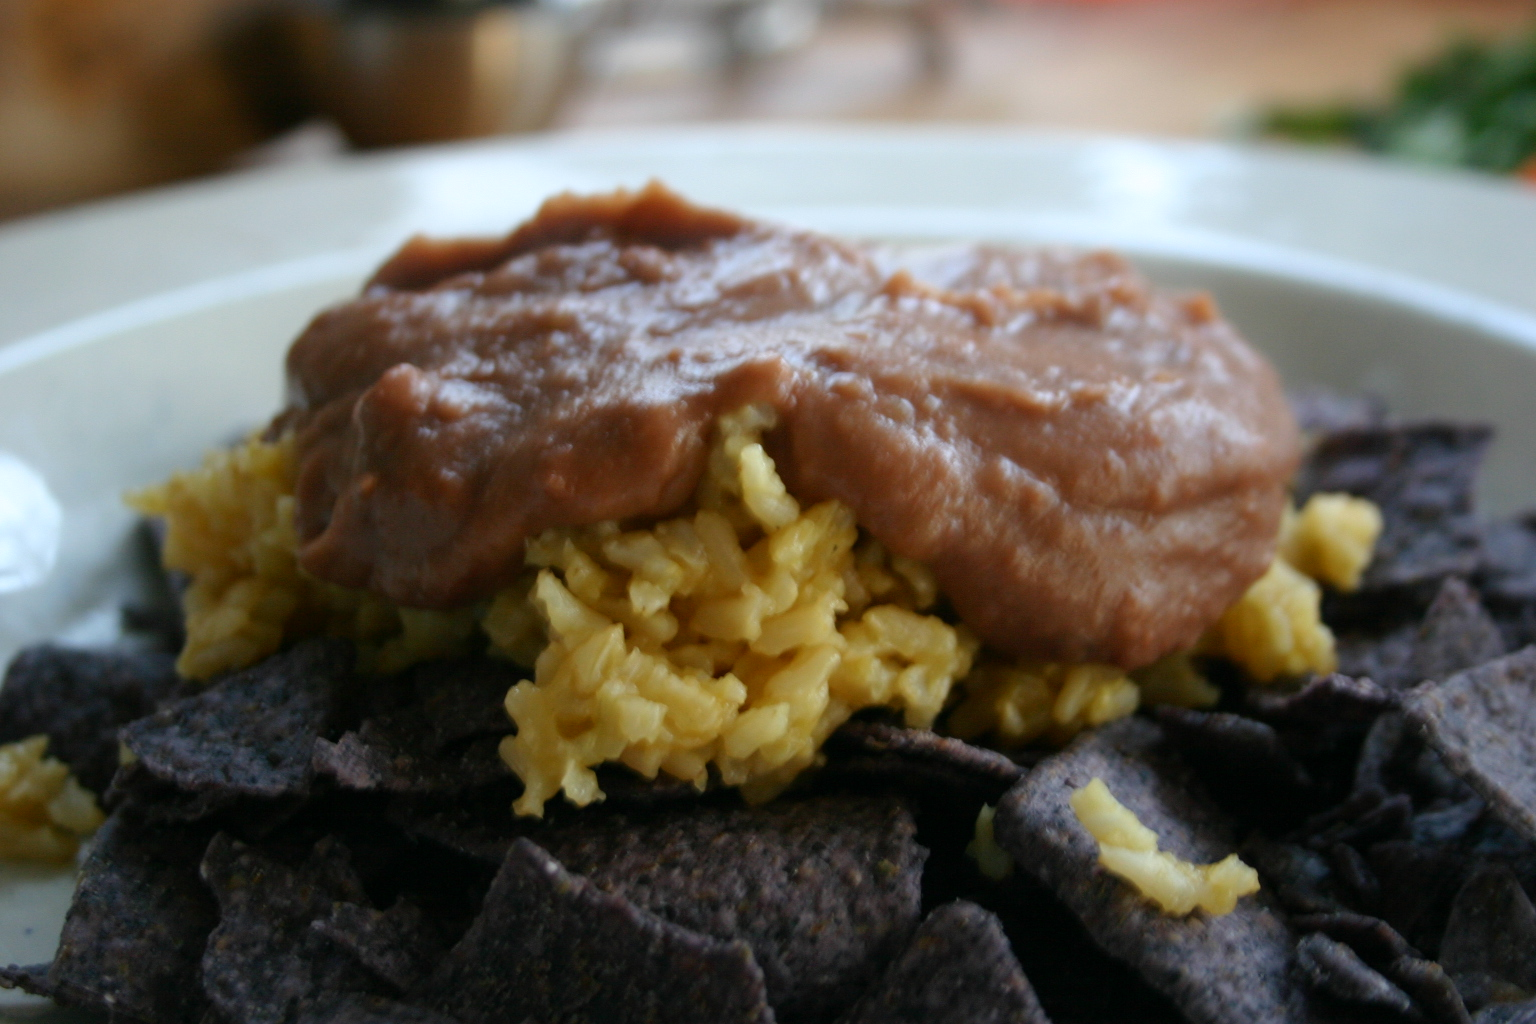 taco salad: rice and beans